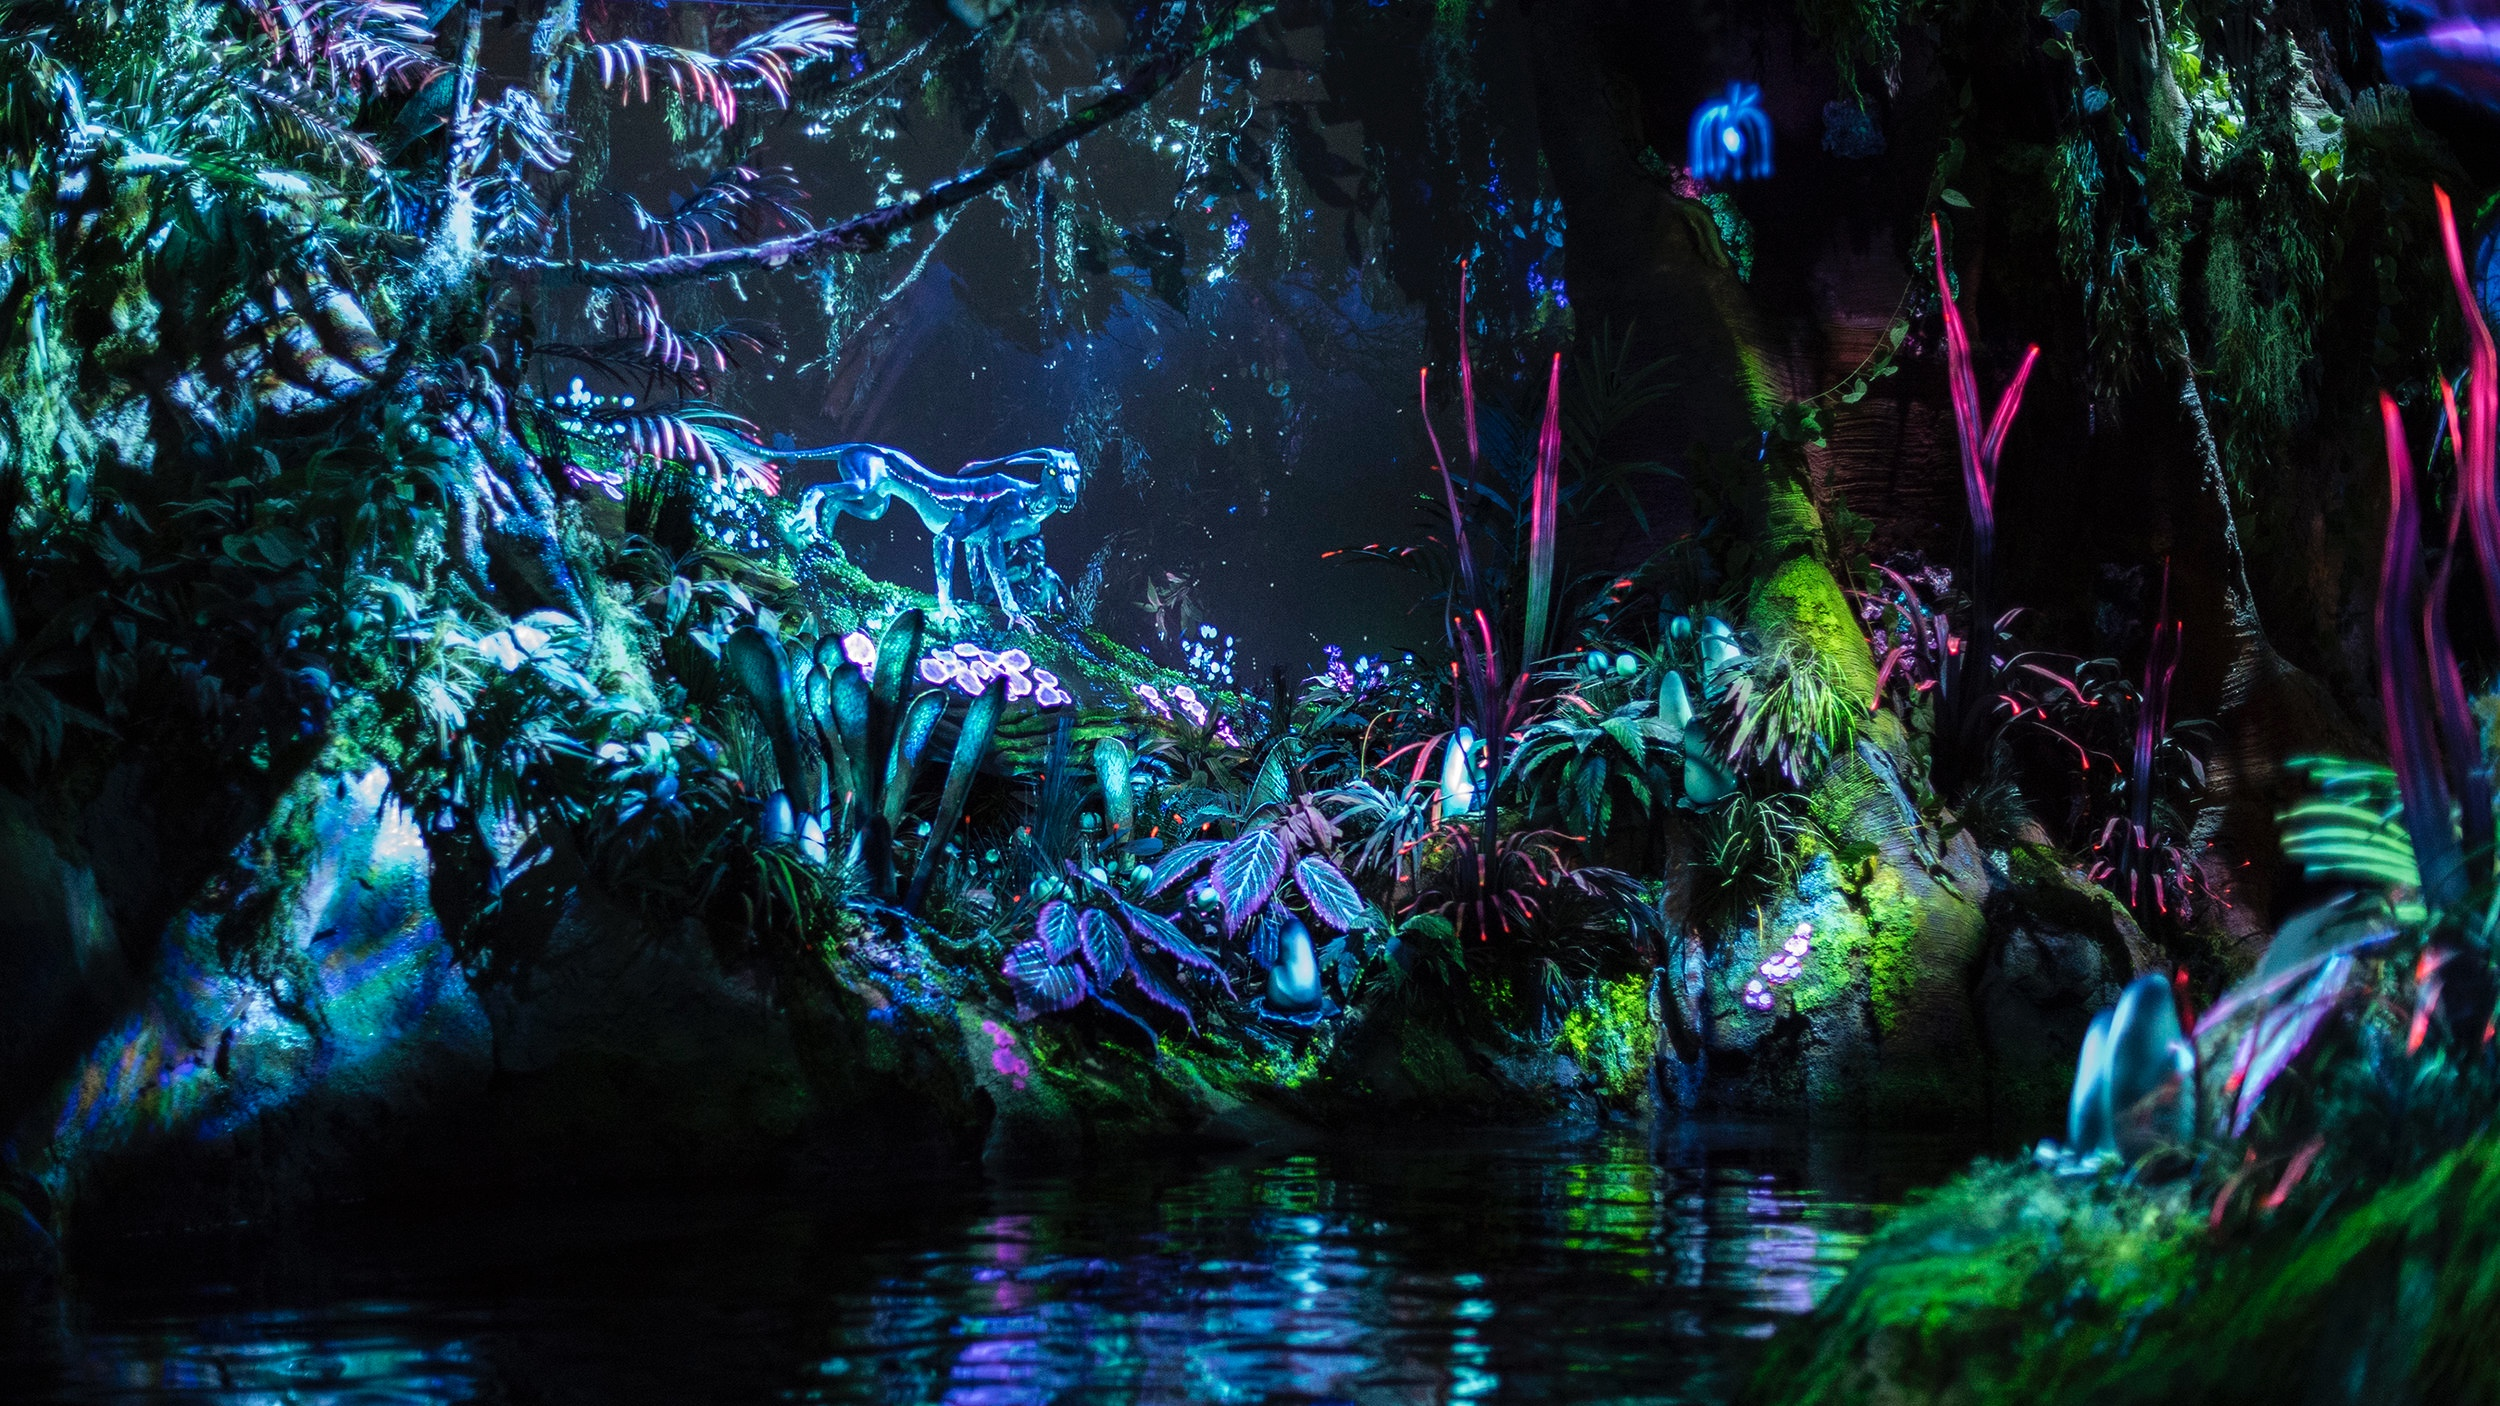 A scene from inside the Na'vi River Journey. (Photo Credit: Disney)